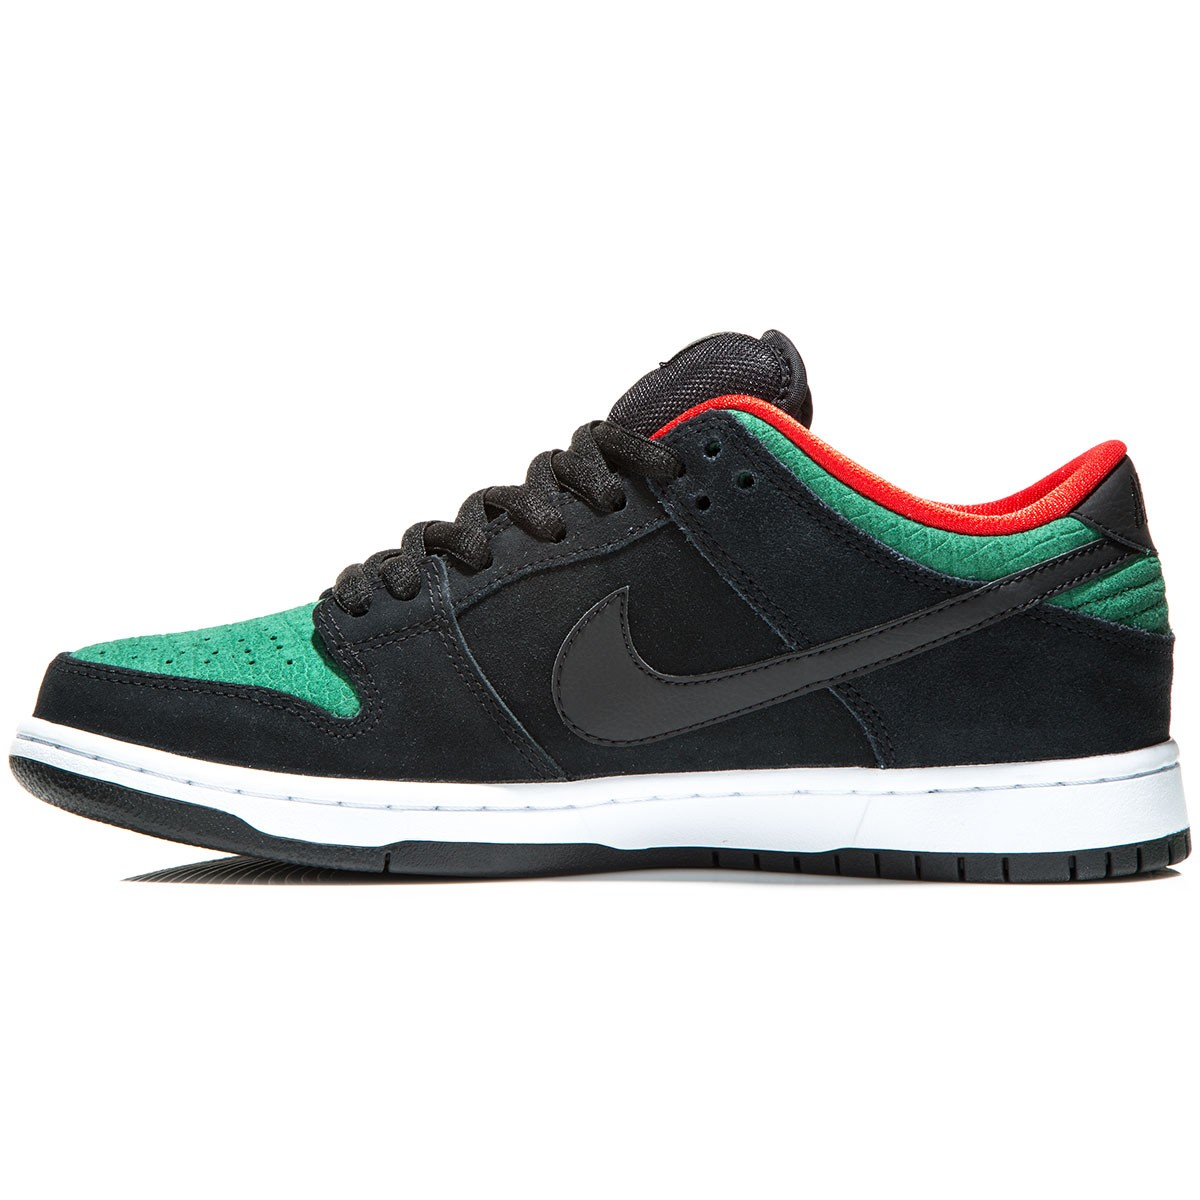 timeless design 4f8a3 23df5 Nike Dunk Low Pro SB Shoes